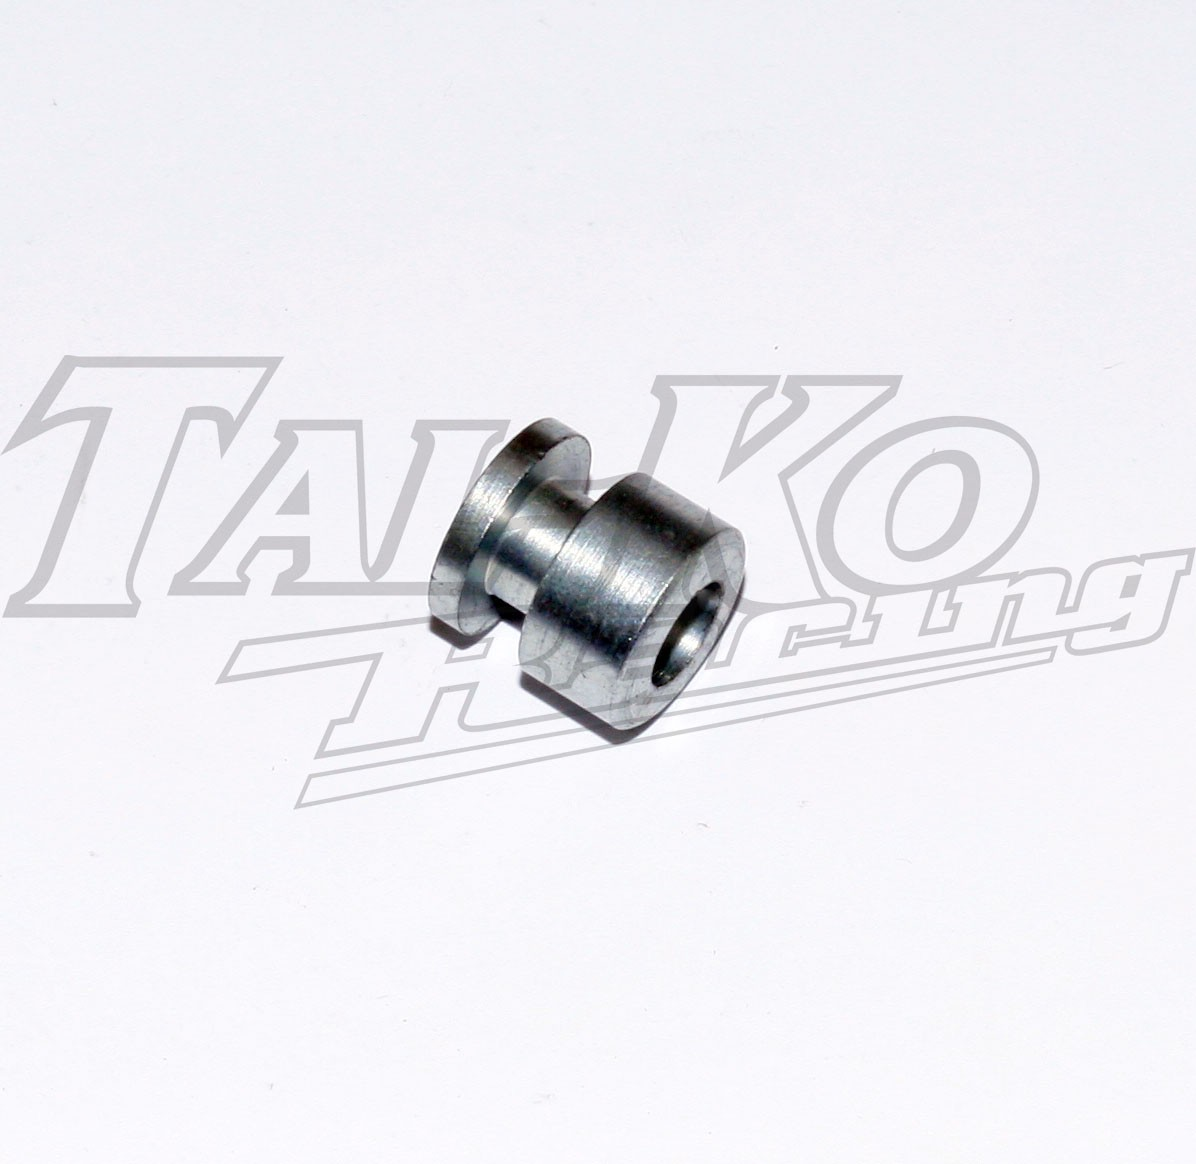 R/R REAR CALIPER PISTON 19mm